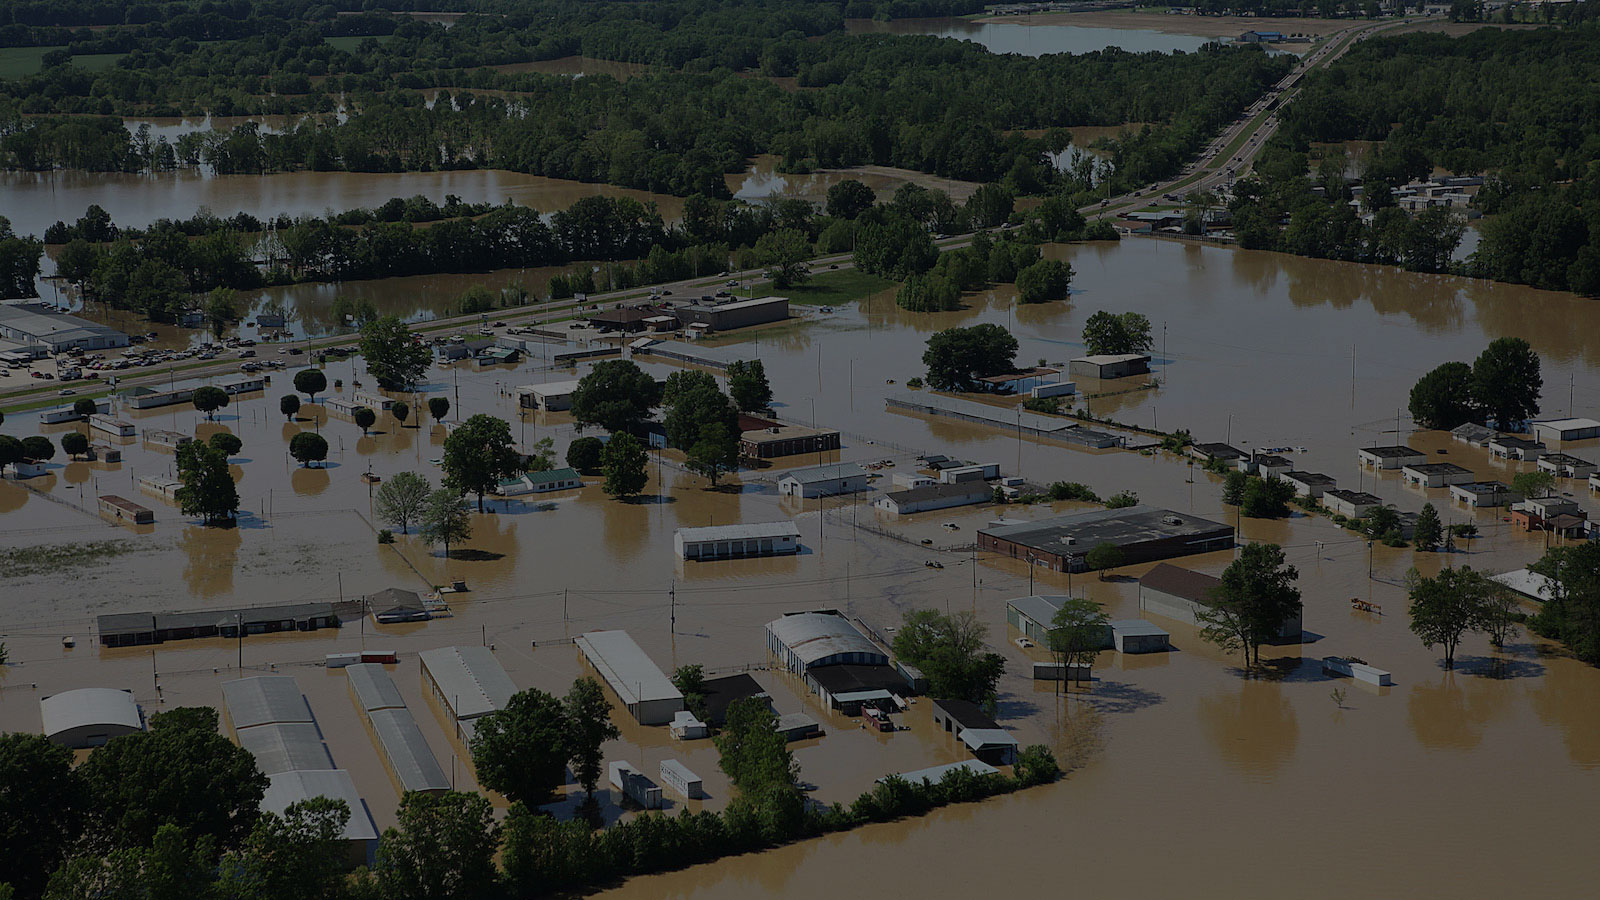 <h4>WE'RE ALREADY EXPERIENCING THE EFFECTS OF CLIMATE CHANGE</h4><h5>Stronger storms, sunny day flooding and sea level rise are threatening coastal communities. Droughts and worsening wildfire seasons threaten communities elsewhere. The result? Millions of Americans risk losing their homes.</h5><em>FEMA via Public Domain</em>